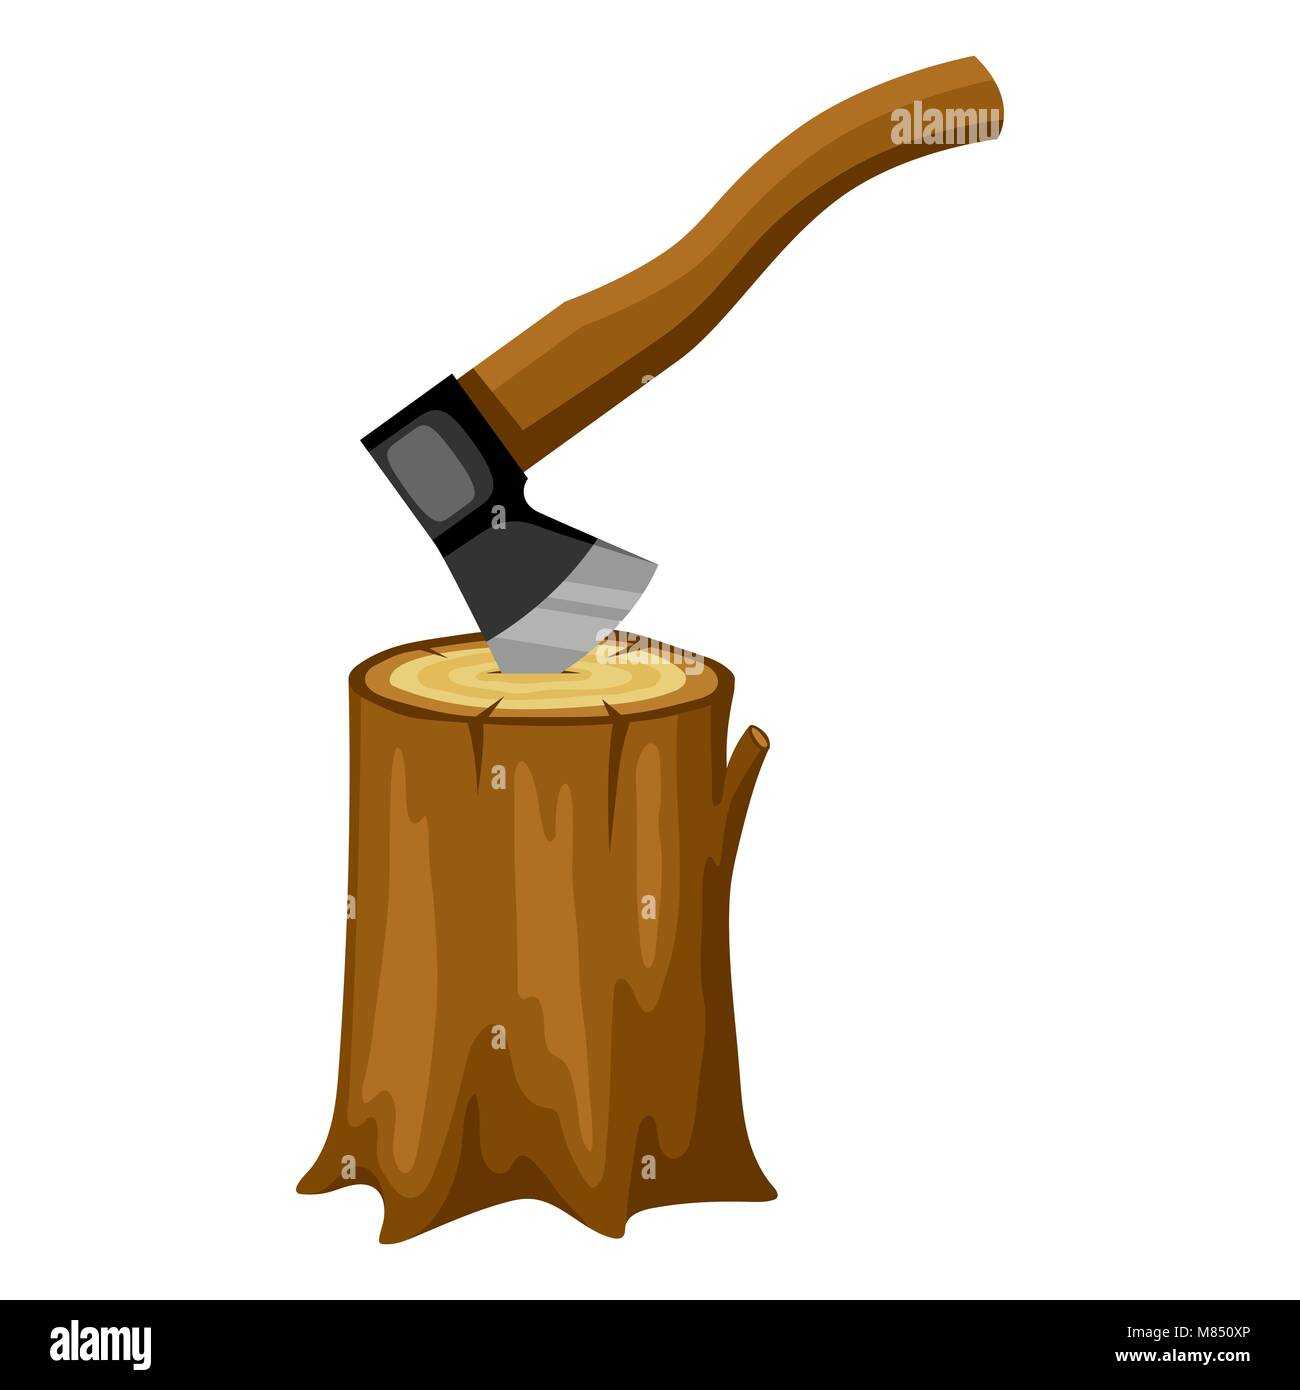 Axe and wood stump. Illustration for forestry and lumber industry - Stock Image